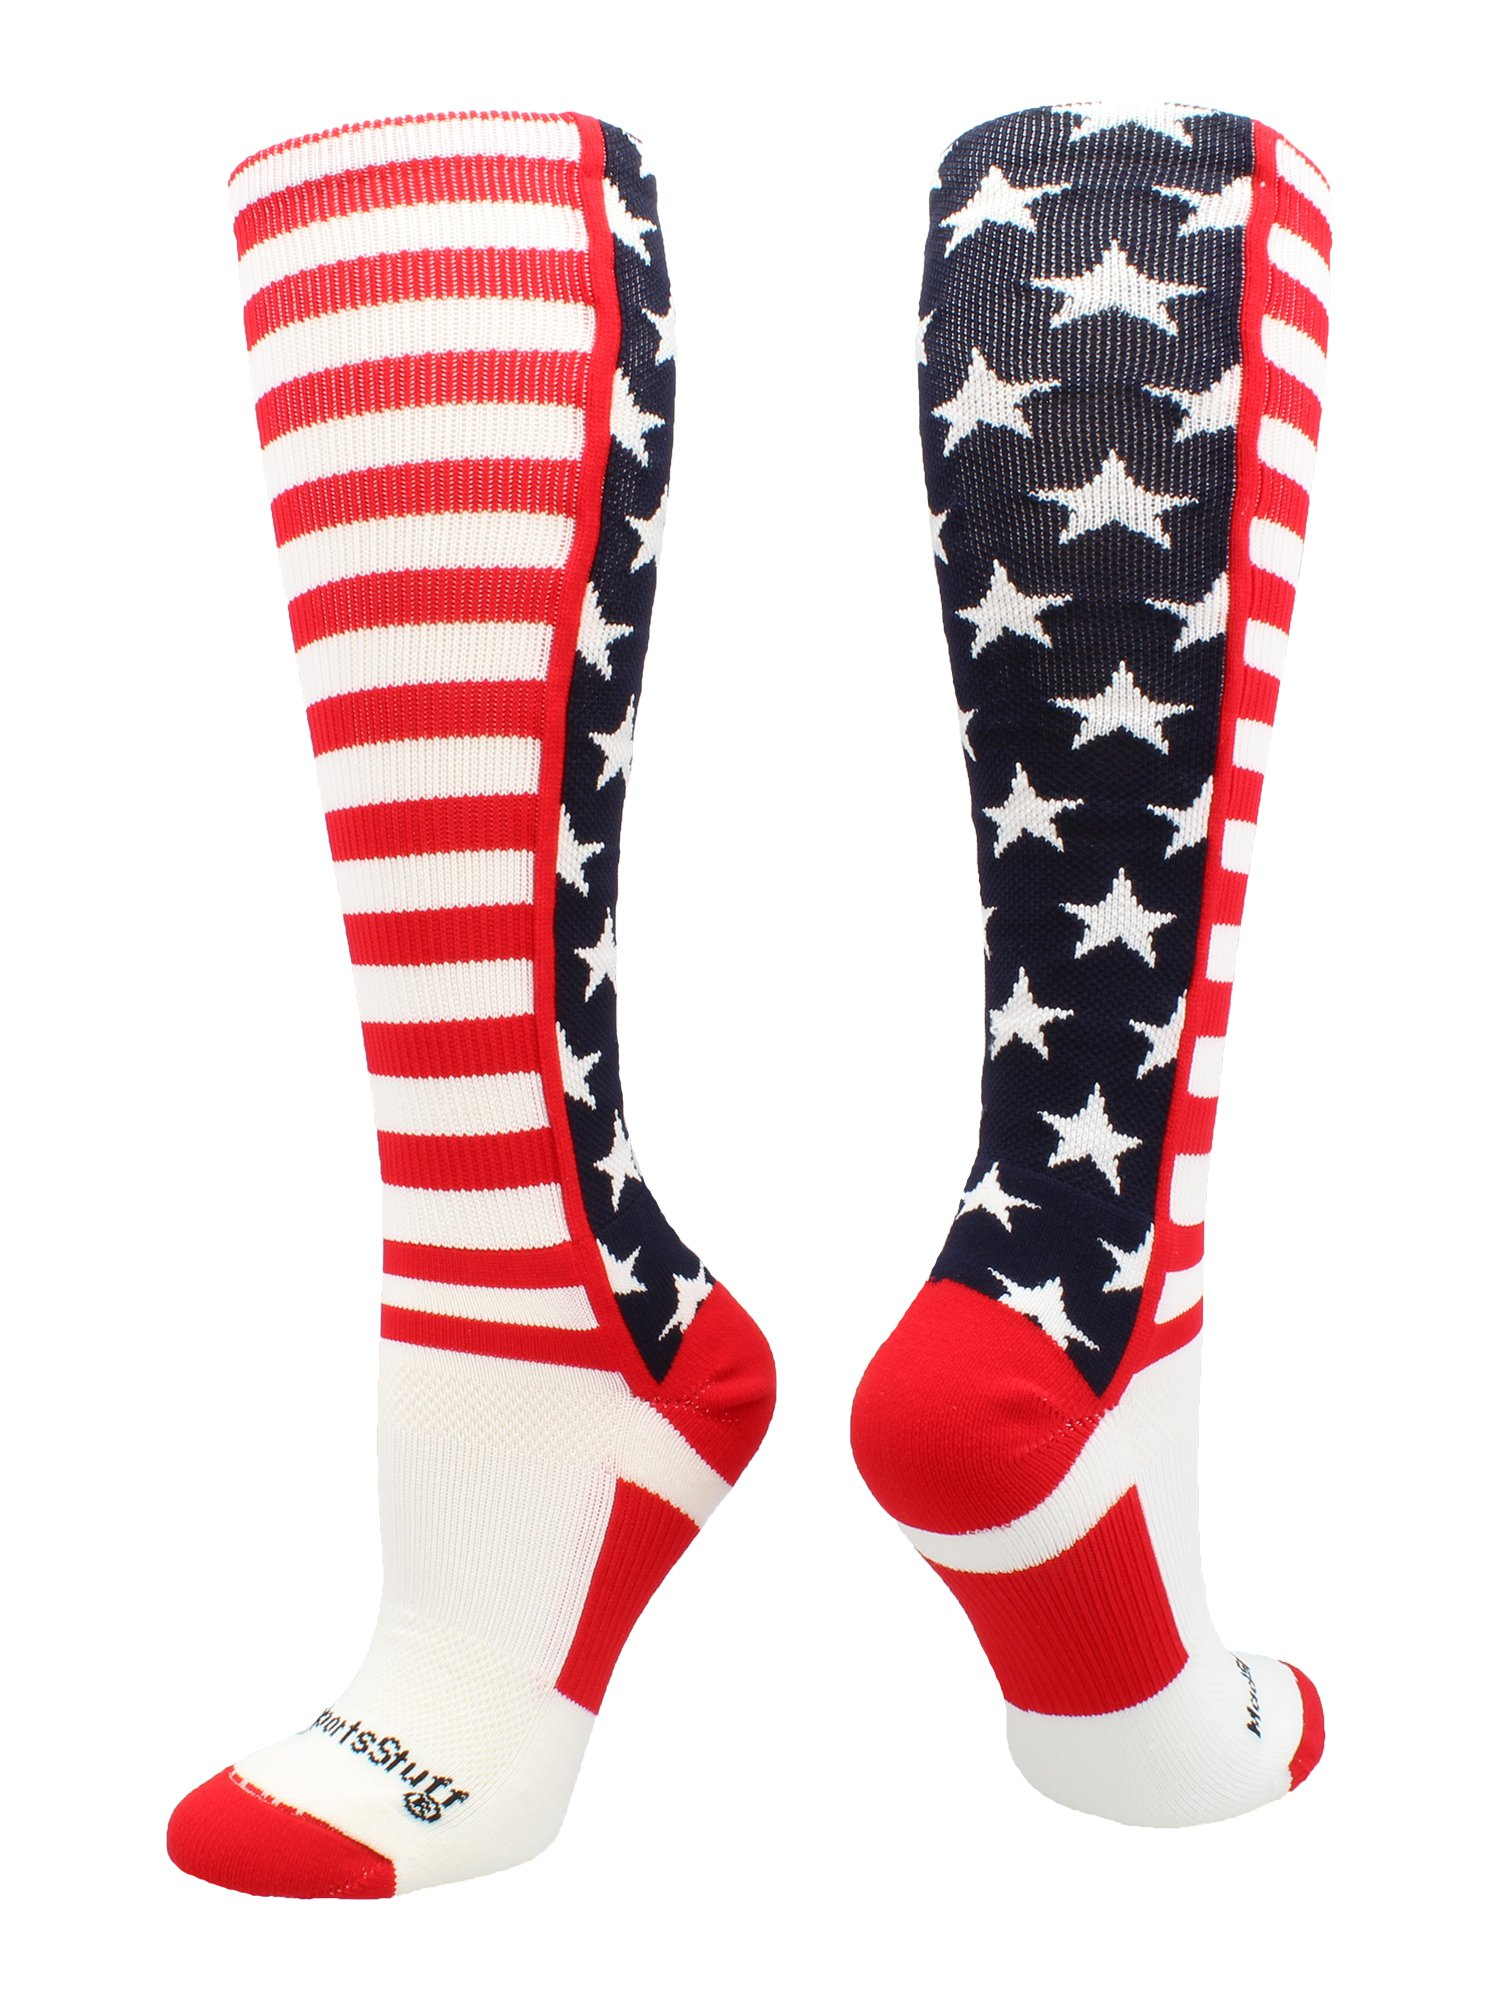 MadSportsStuff USA American Flag Stars and Stripes Over the Calf Socks (Navy/Red/White, Small)